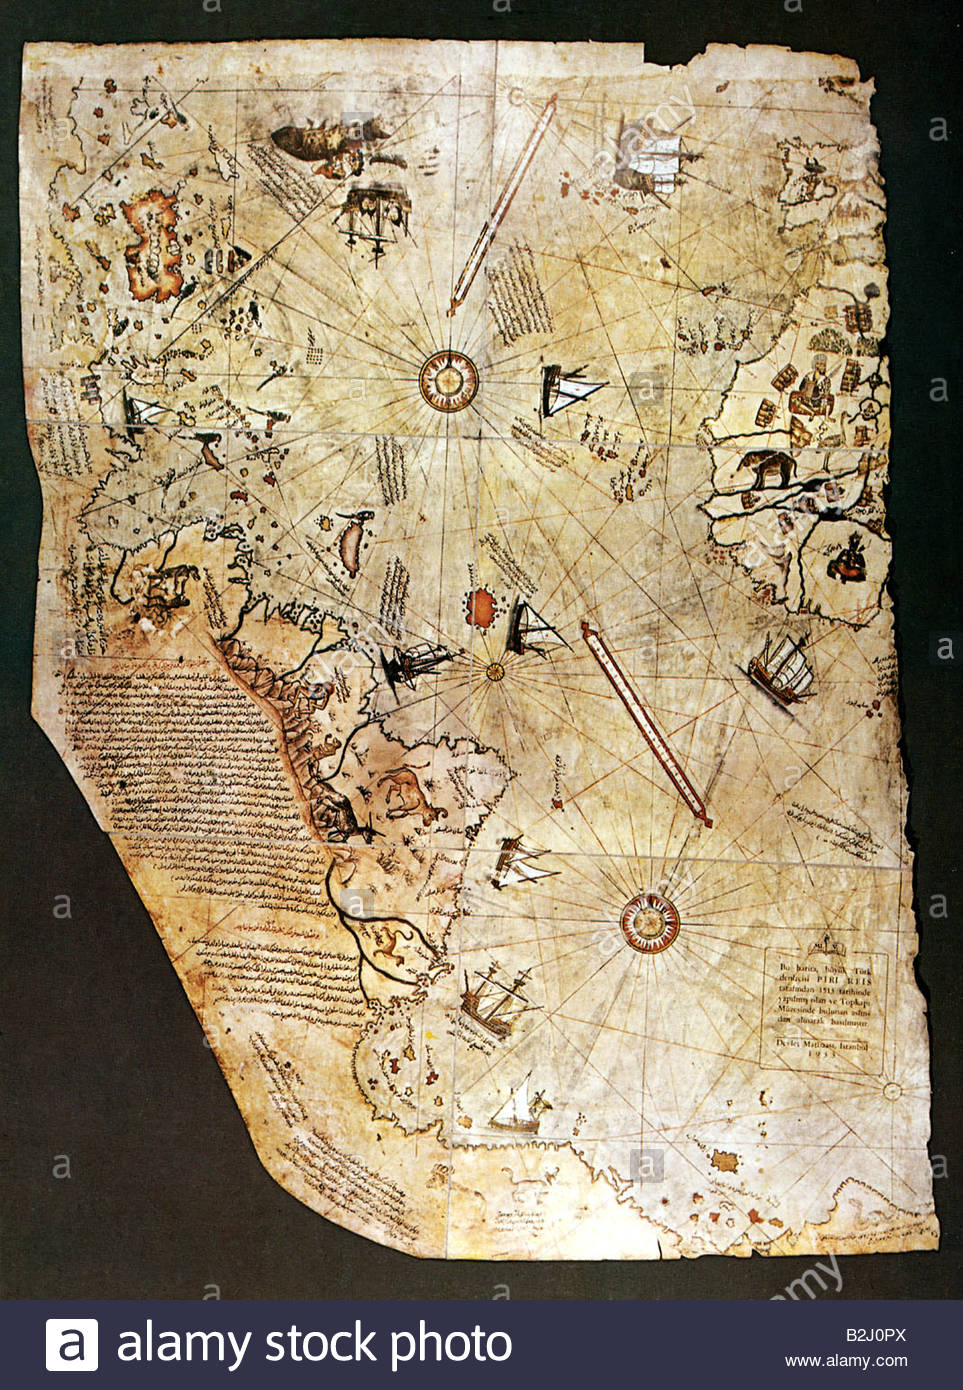 Maps atlantic ocean first world map of piri reis 1513 topkapi maps atlantic ocean first world map of piri reis 1513 topkapi palace america africa atlantic ocean the caribbean battl gumiabroncs Image collections